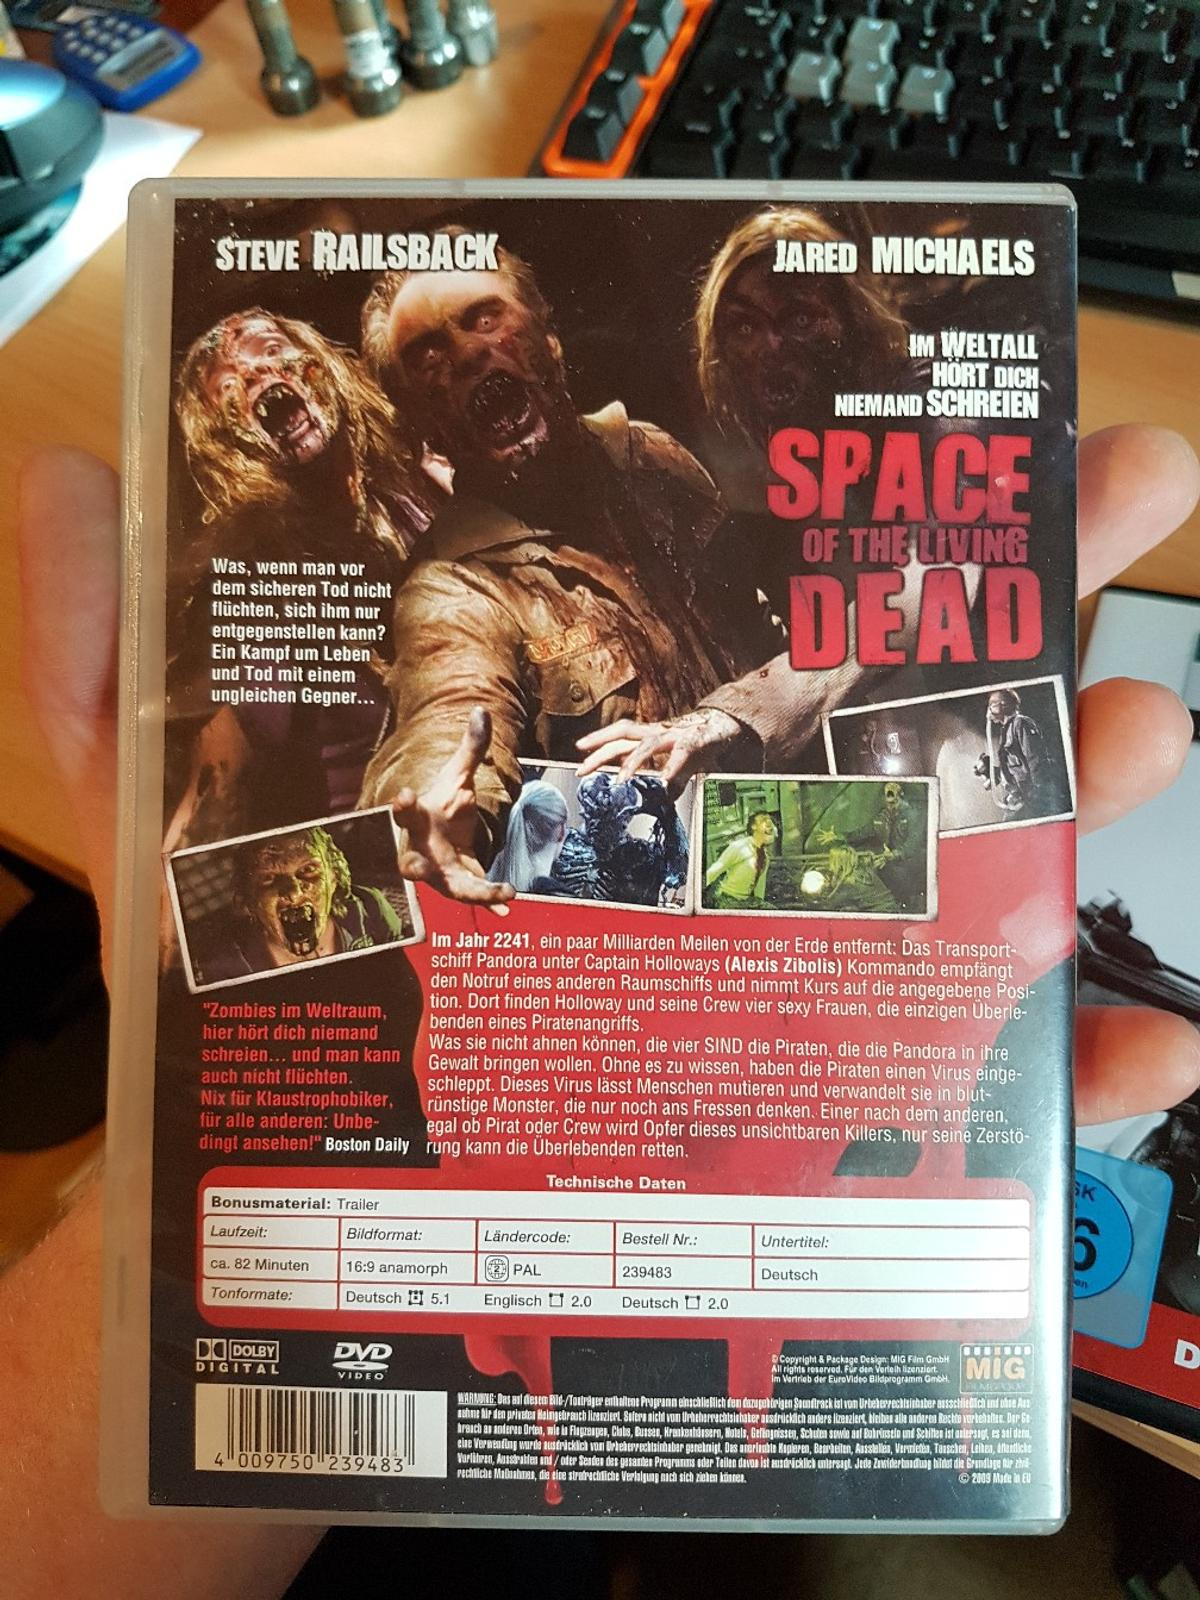 Alle Anderen 2009 dvd space of the living dead